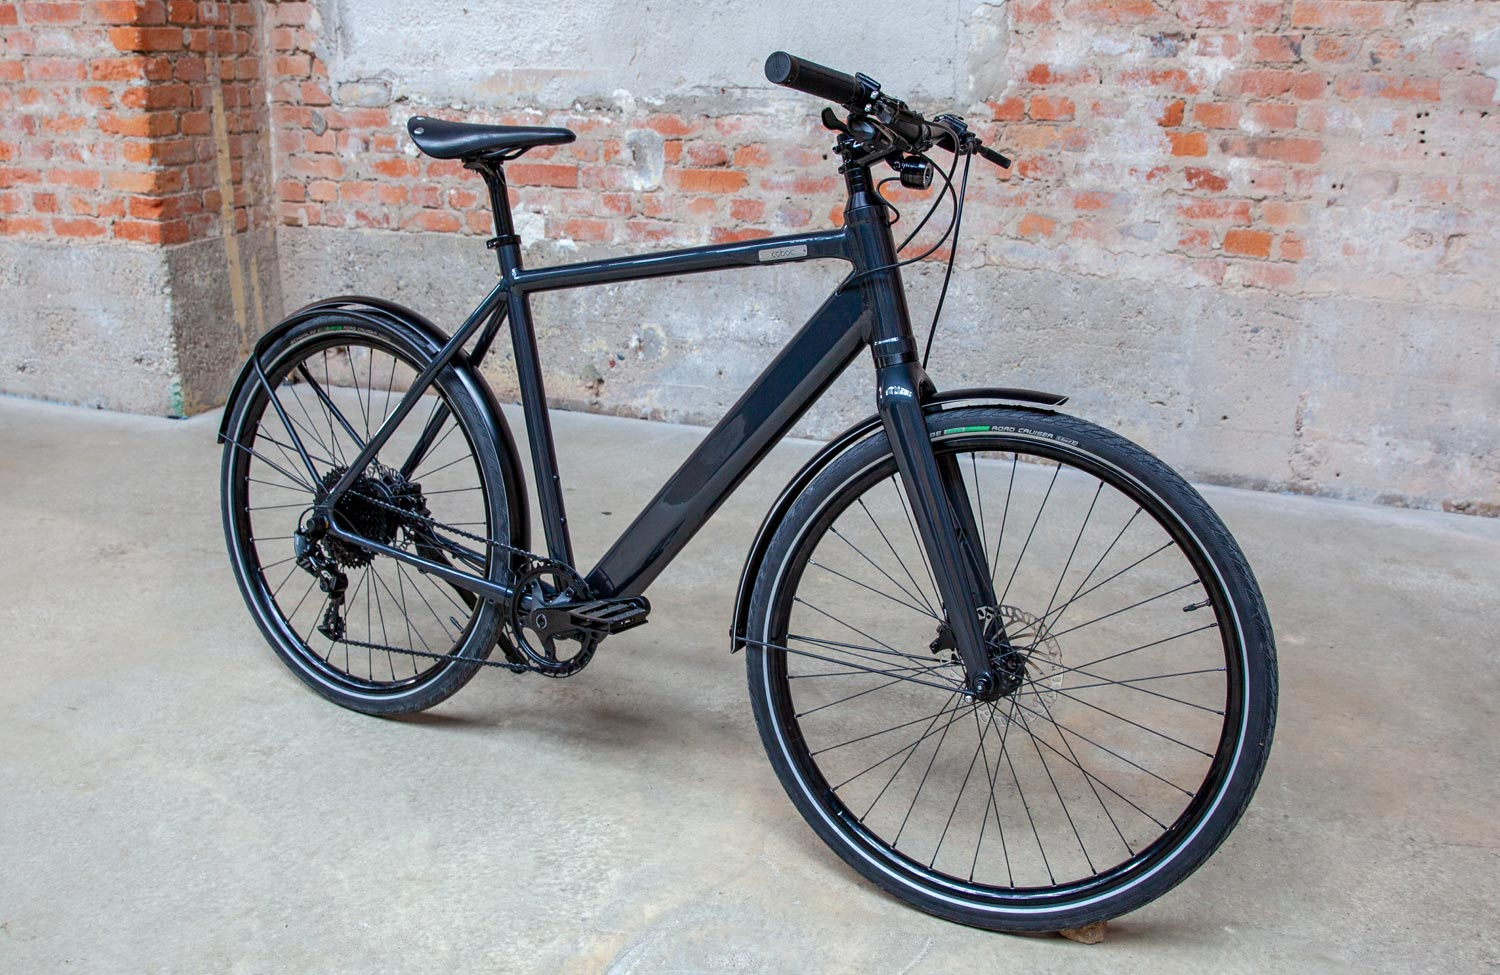 Stylish commuter bike from Coboc: the new edition of the Vesterbro